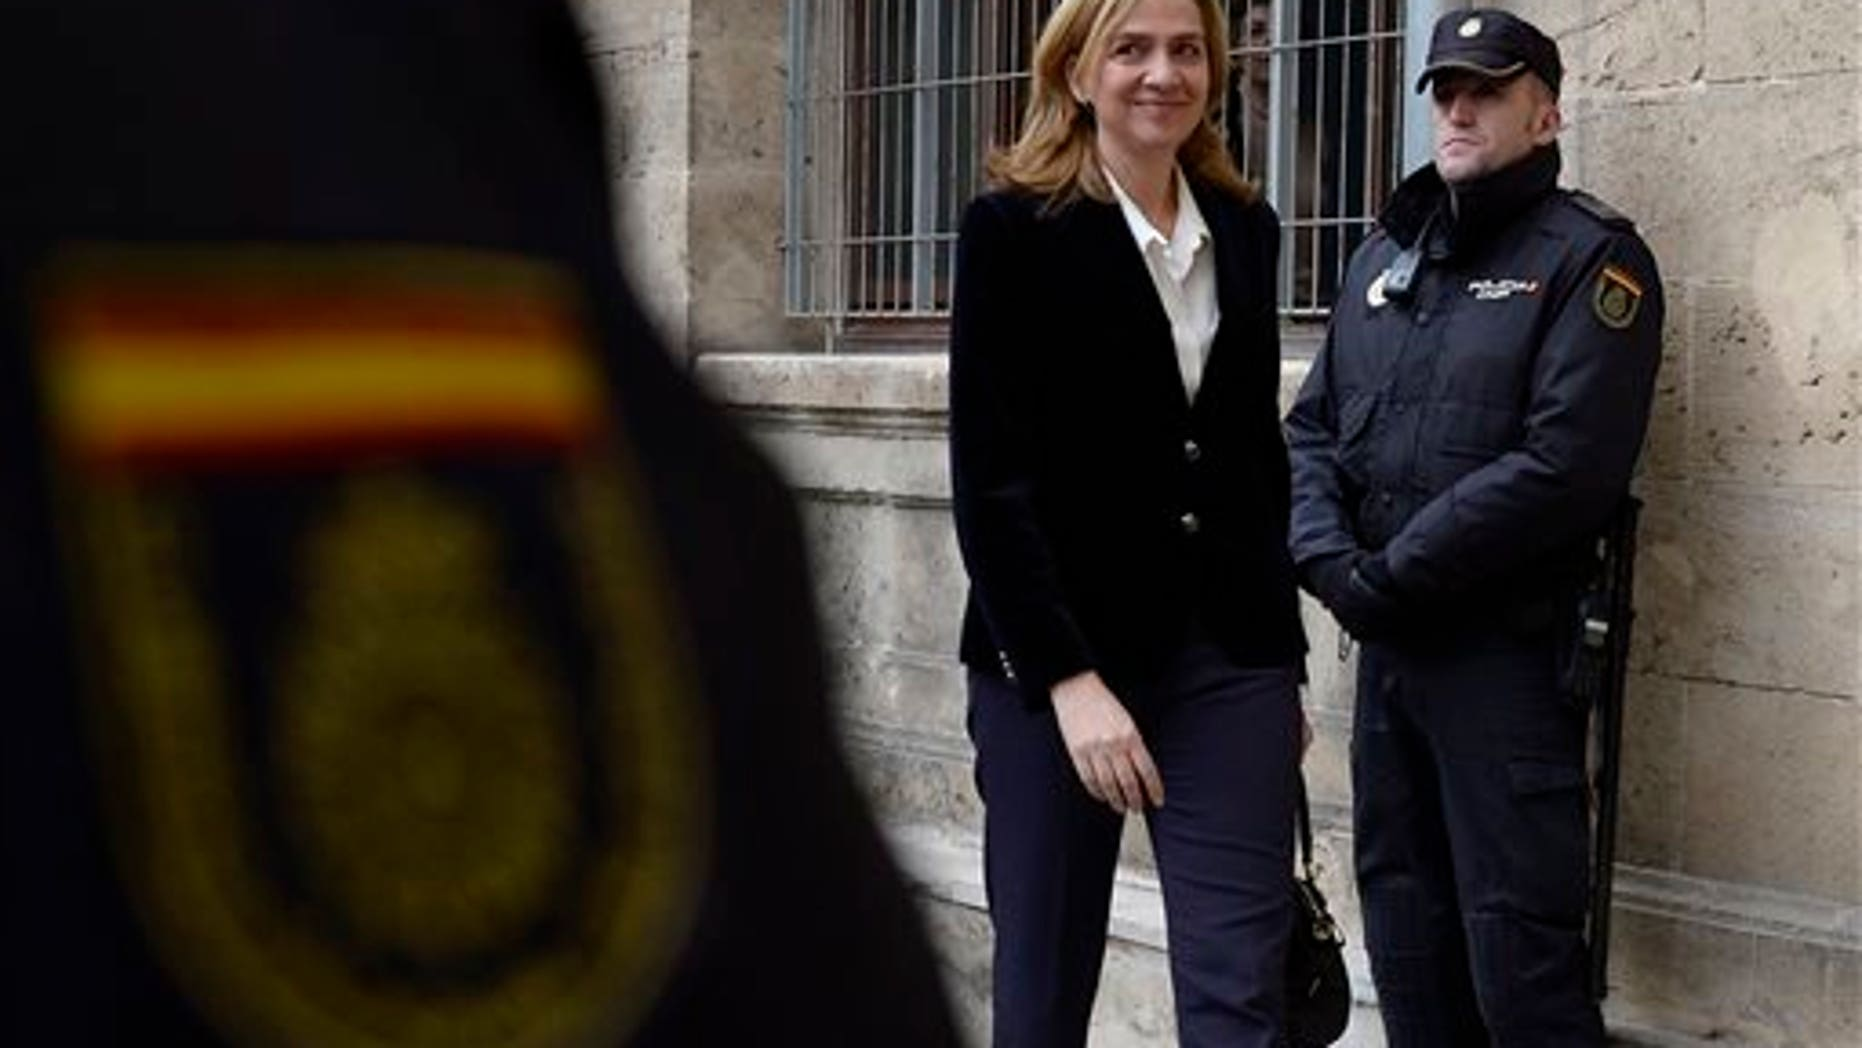 In this Feb. 8, 2014 file photo, Spain's Princess Cristina arrives at the courthouse in Palma de Mallorca, Spain after being named as a fraud and money laundering suspect. A Spanish judge on Wednesday June 25, 2014, has moved closer to indicting Princess Cristina, sister of newly proclaimed King Felipe, in a tax fraud and money laundering investigation centering on her husband. Wrapping up a four-year pre-trial investigation, Palma de Mallorca investigative magistrate Jose Castro kept Cristina on the list of suspects he thinks should stand trial, in her case for money laundering and tax fraud cooperation.